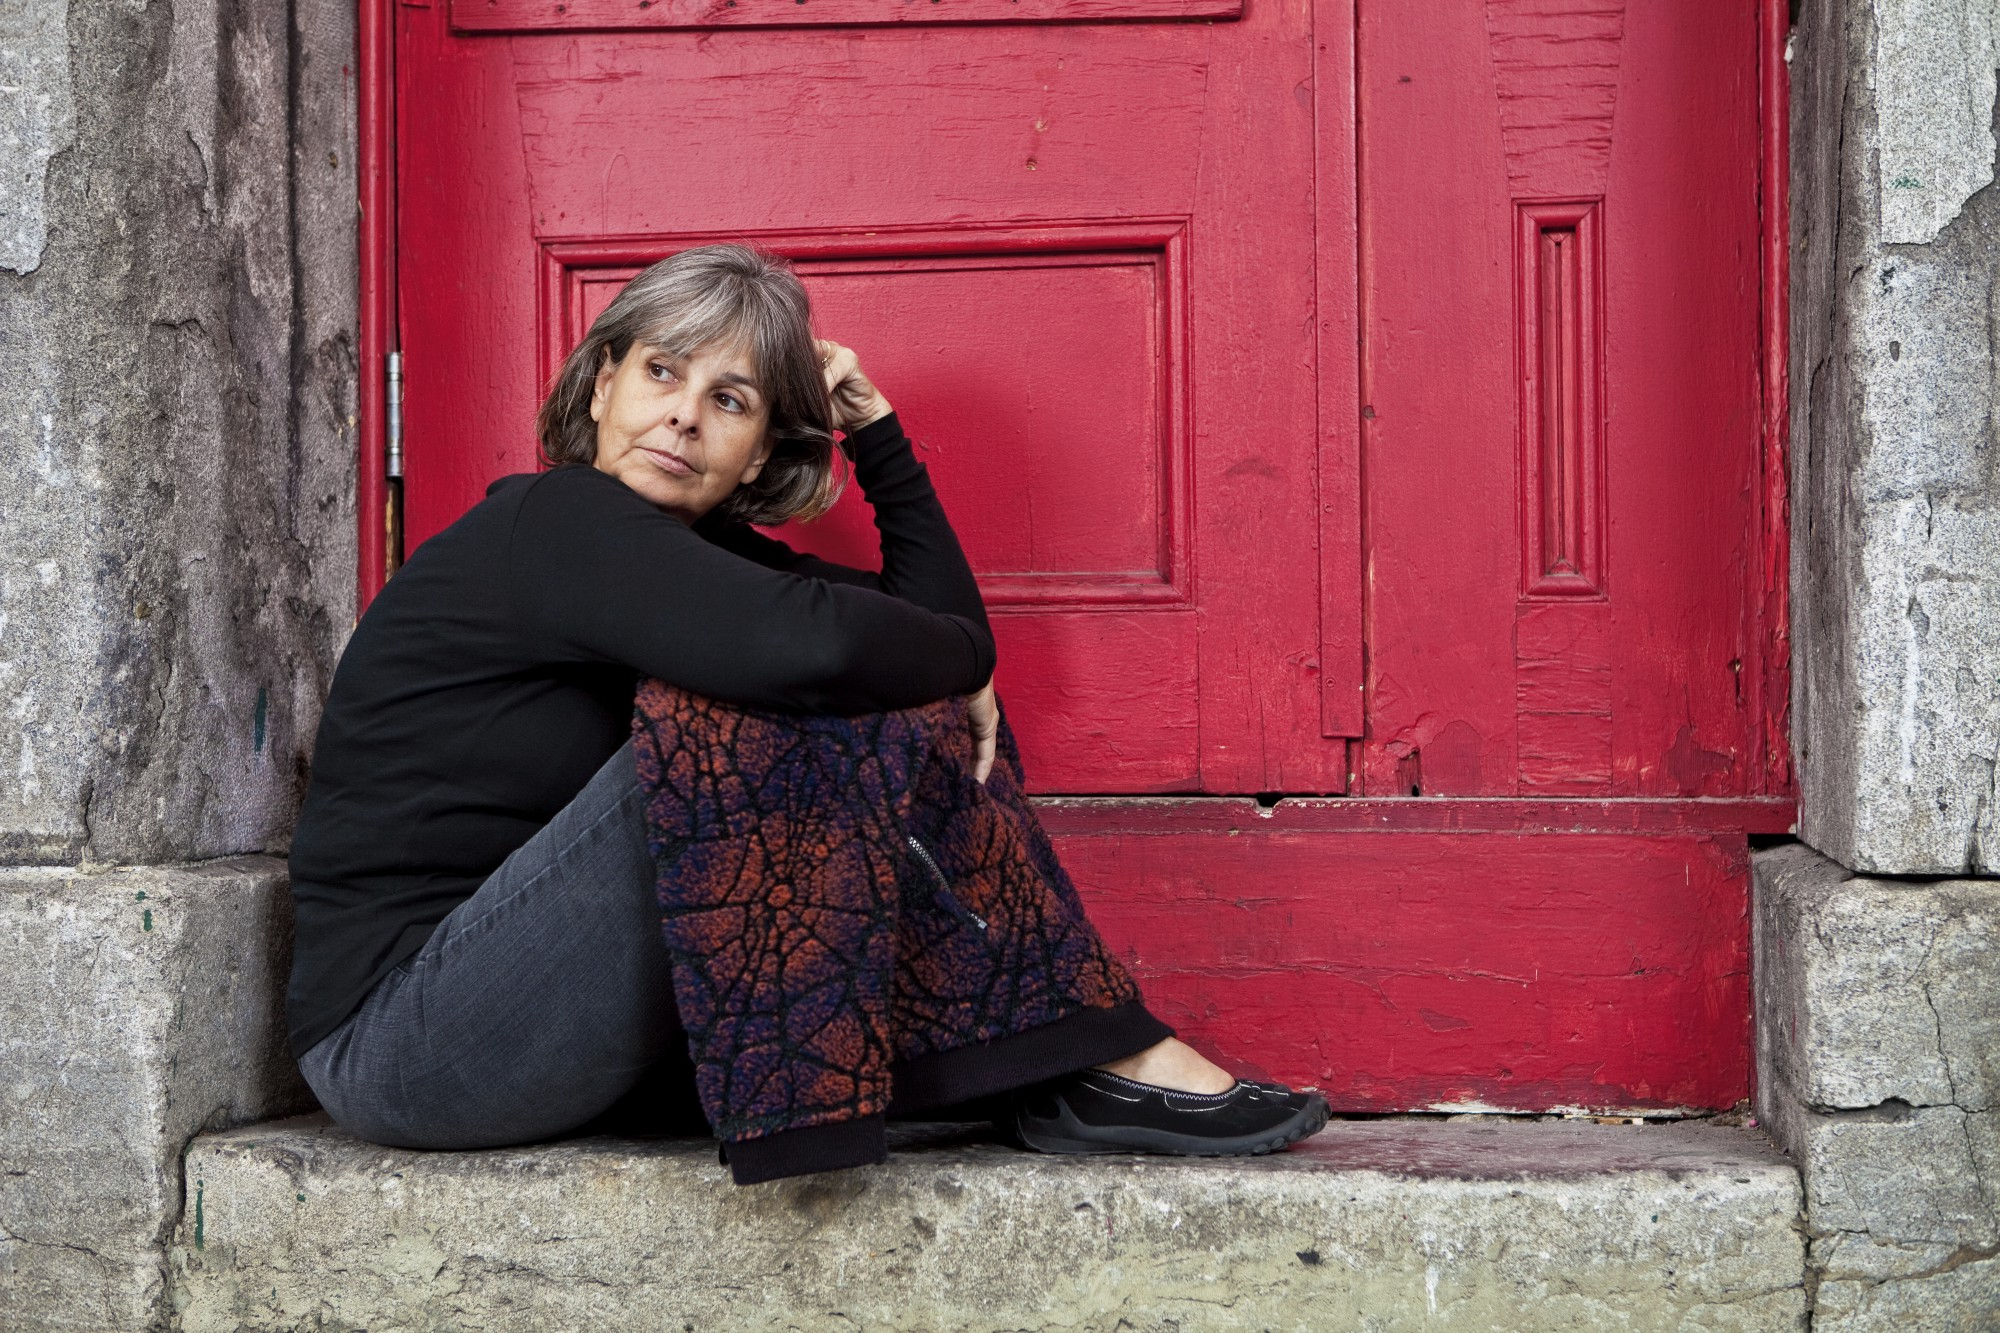 A respectable looking middle-aged woman sits in a doorway with a blanket over her knees